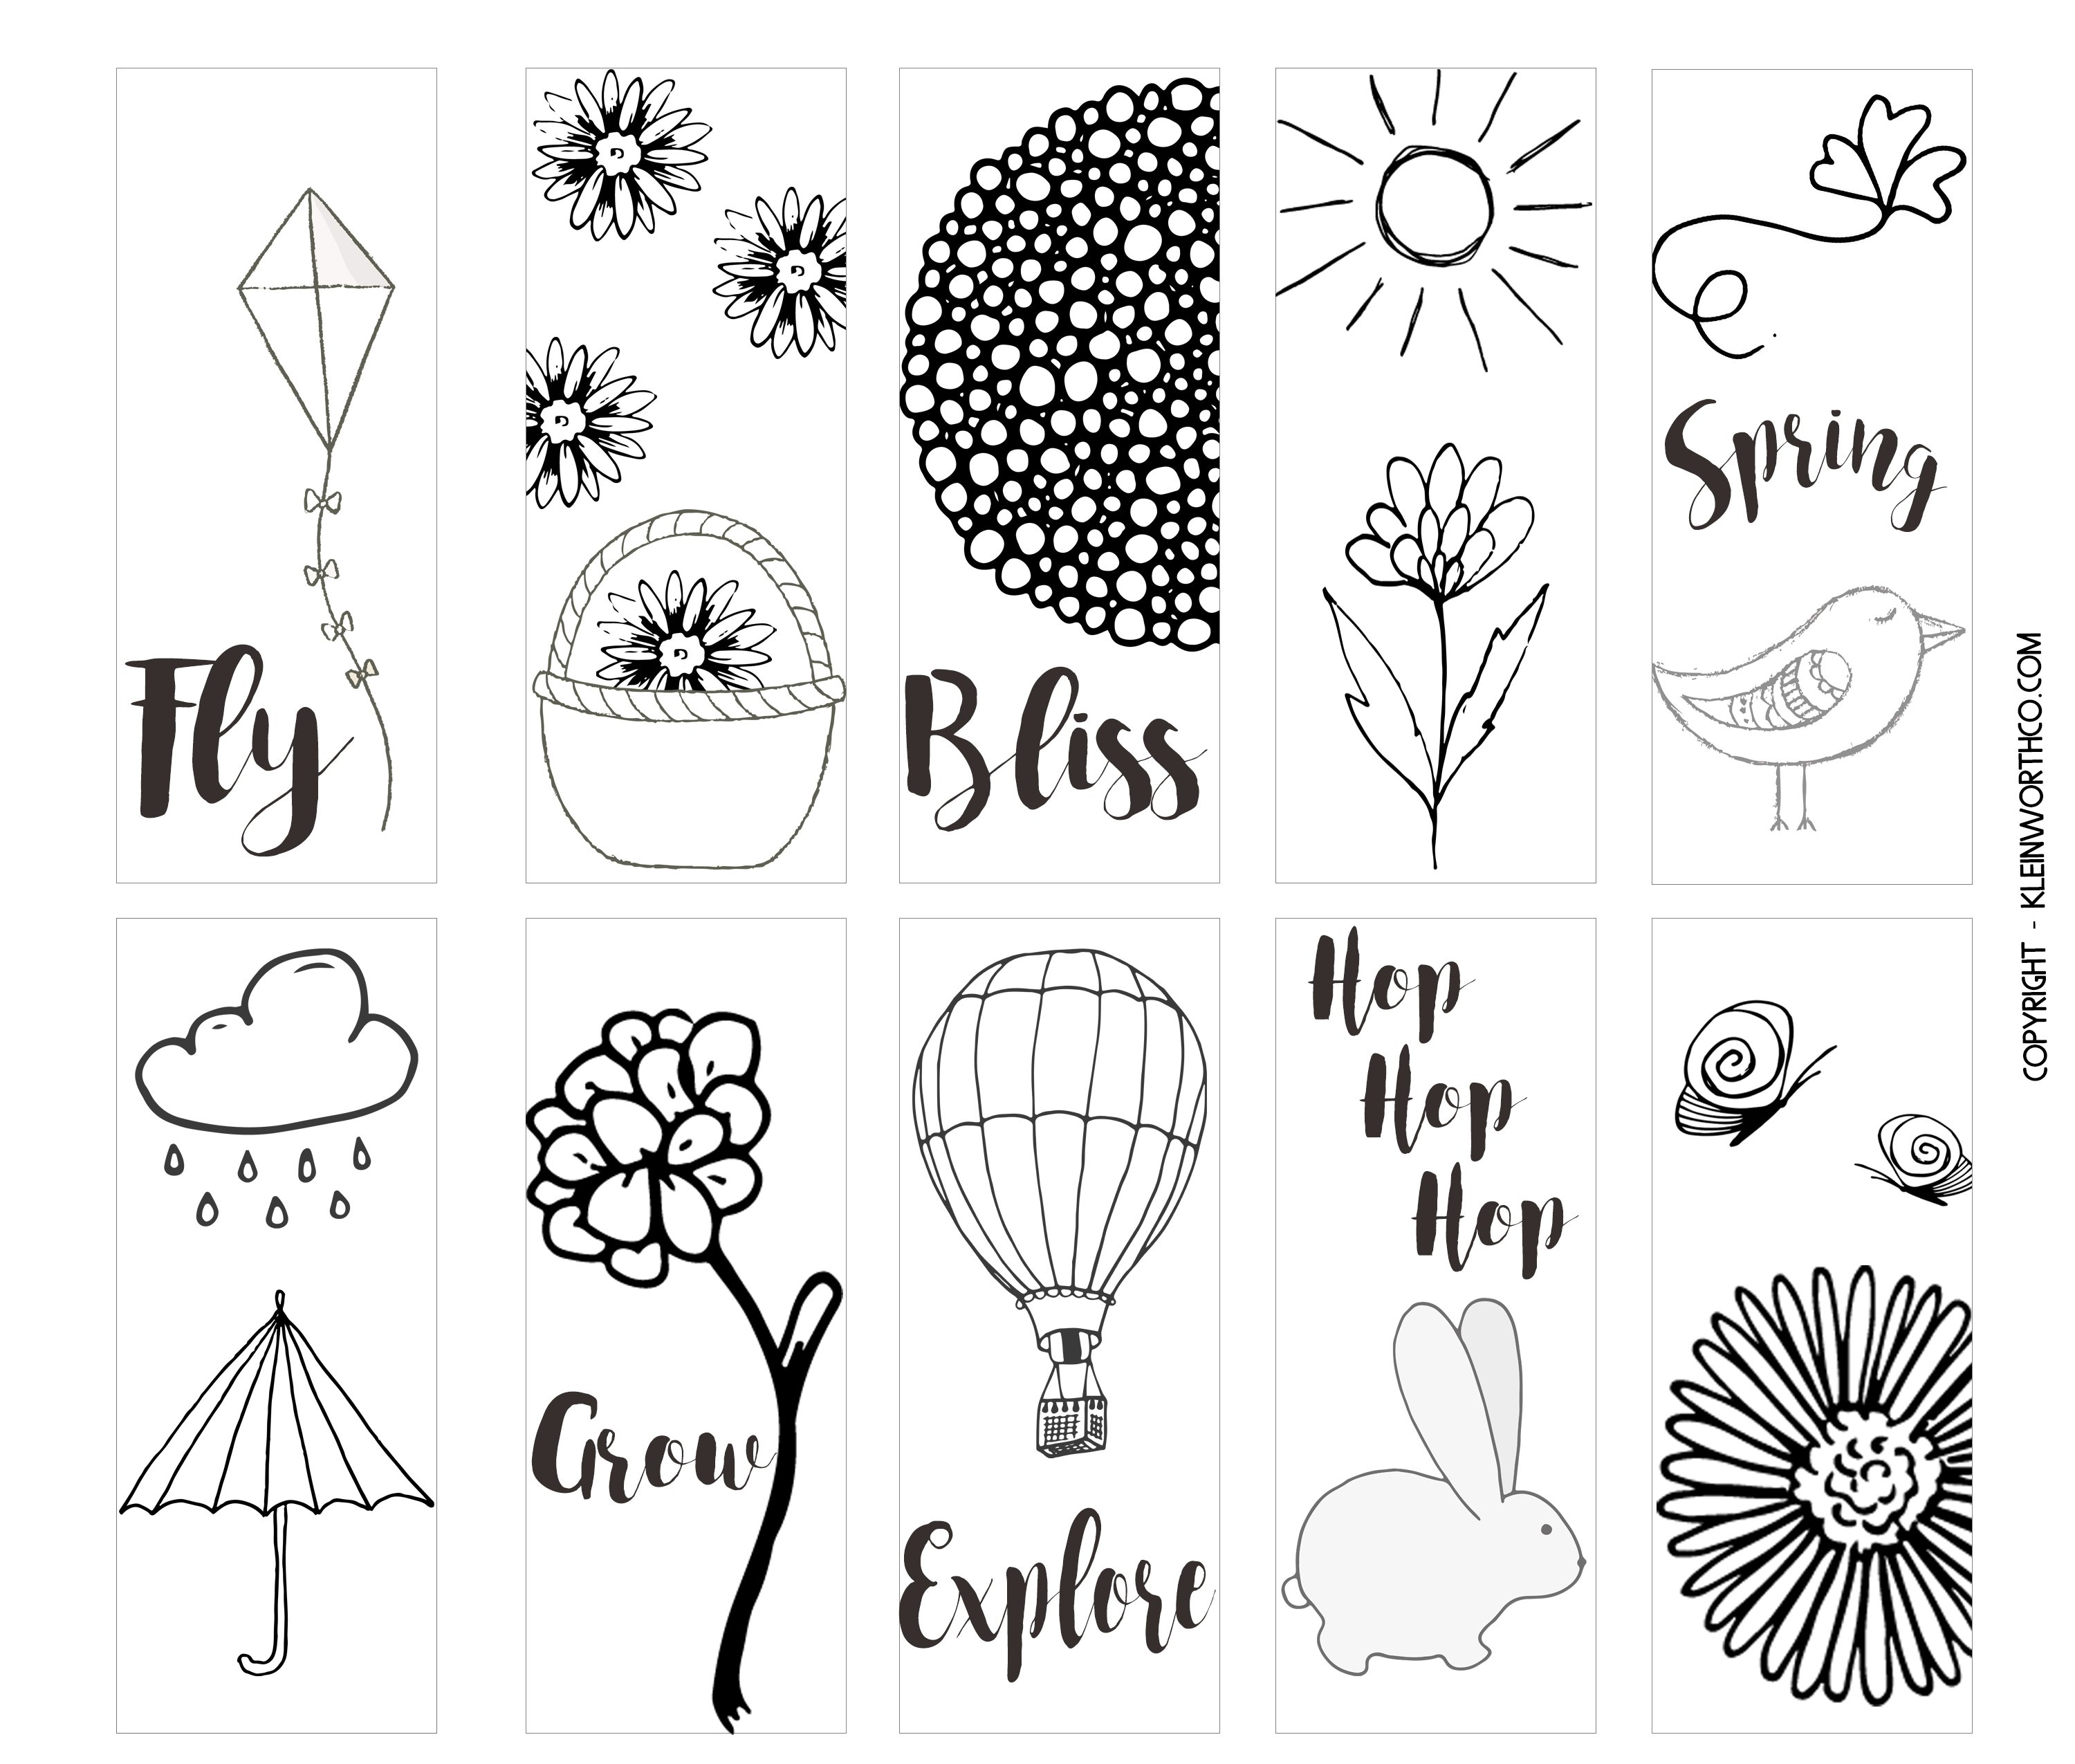 Spring Printable Coloring Page Bookmarks - Kleinworth & Co